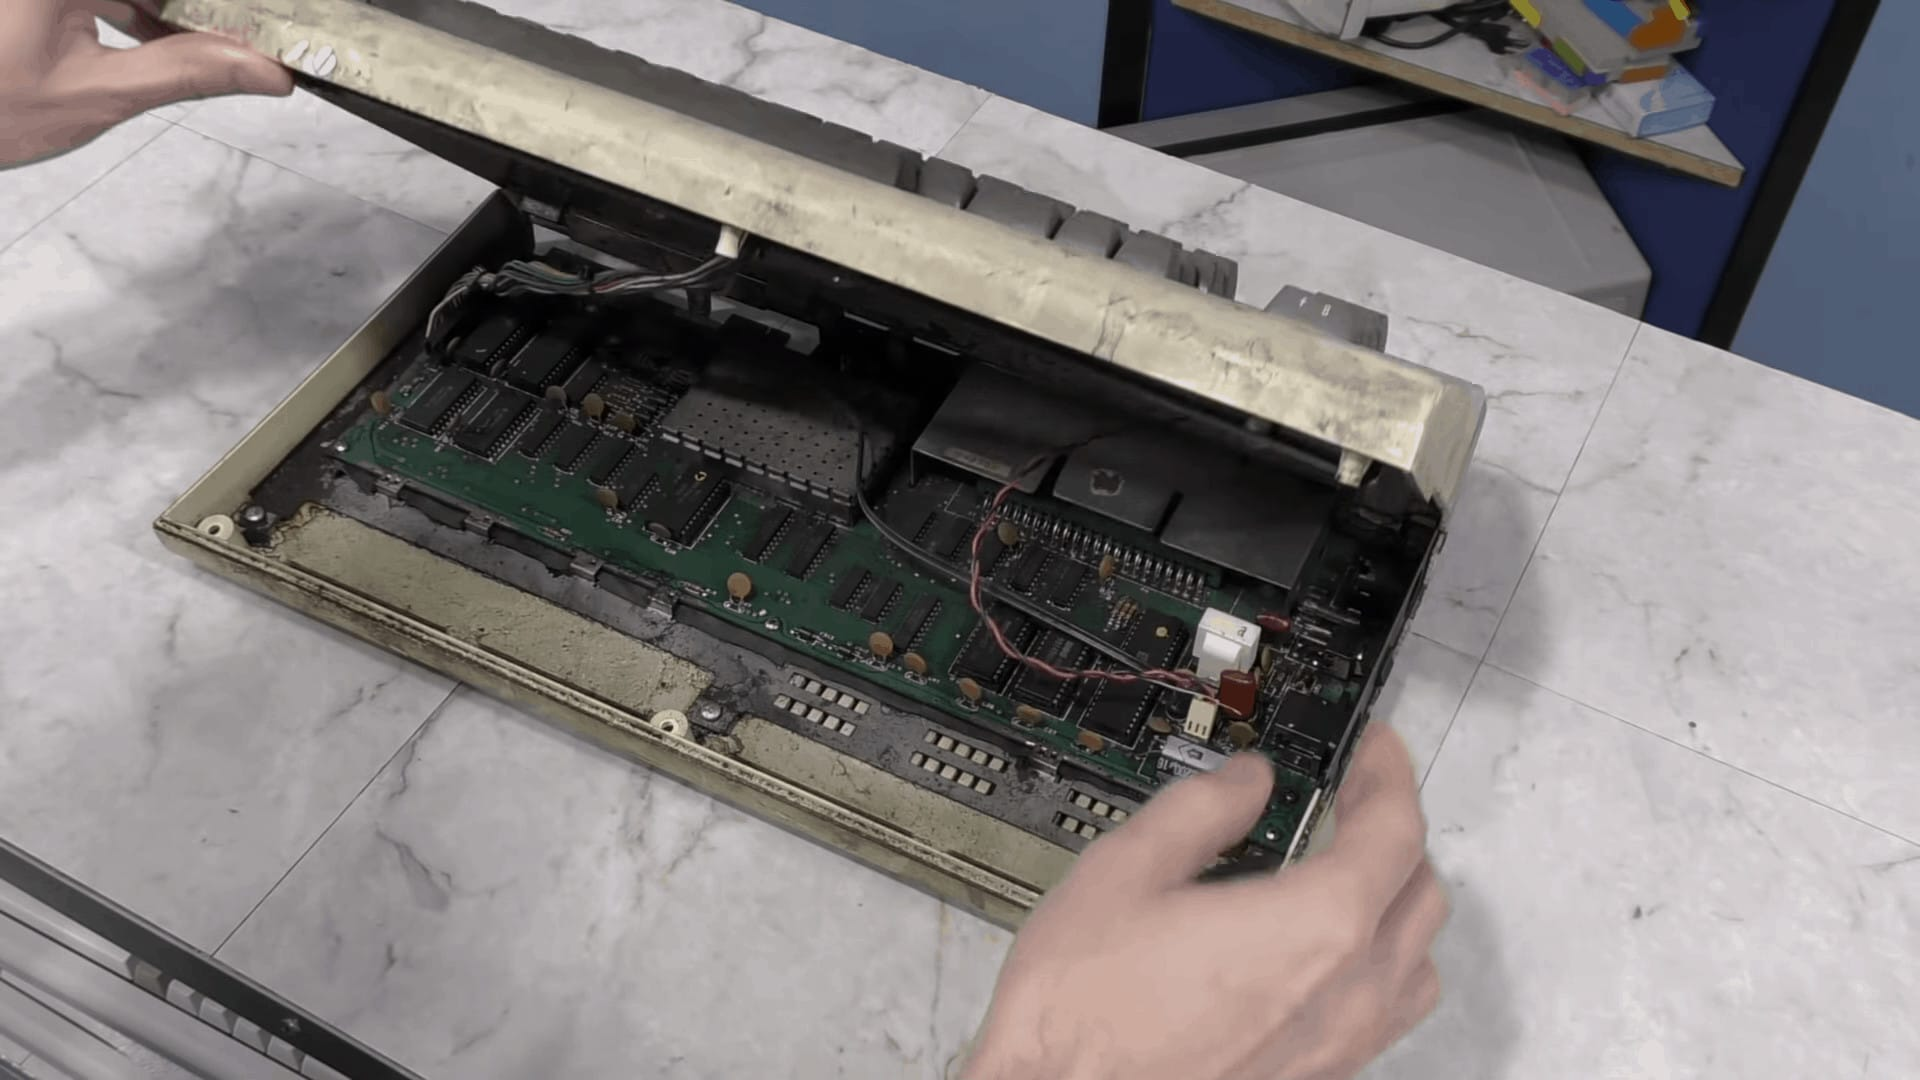 Opening the VIC-20